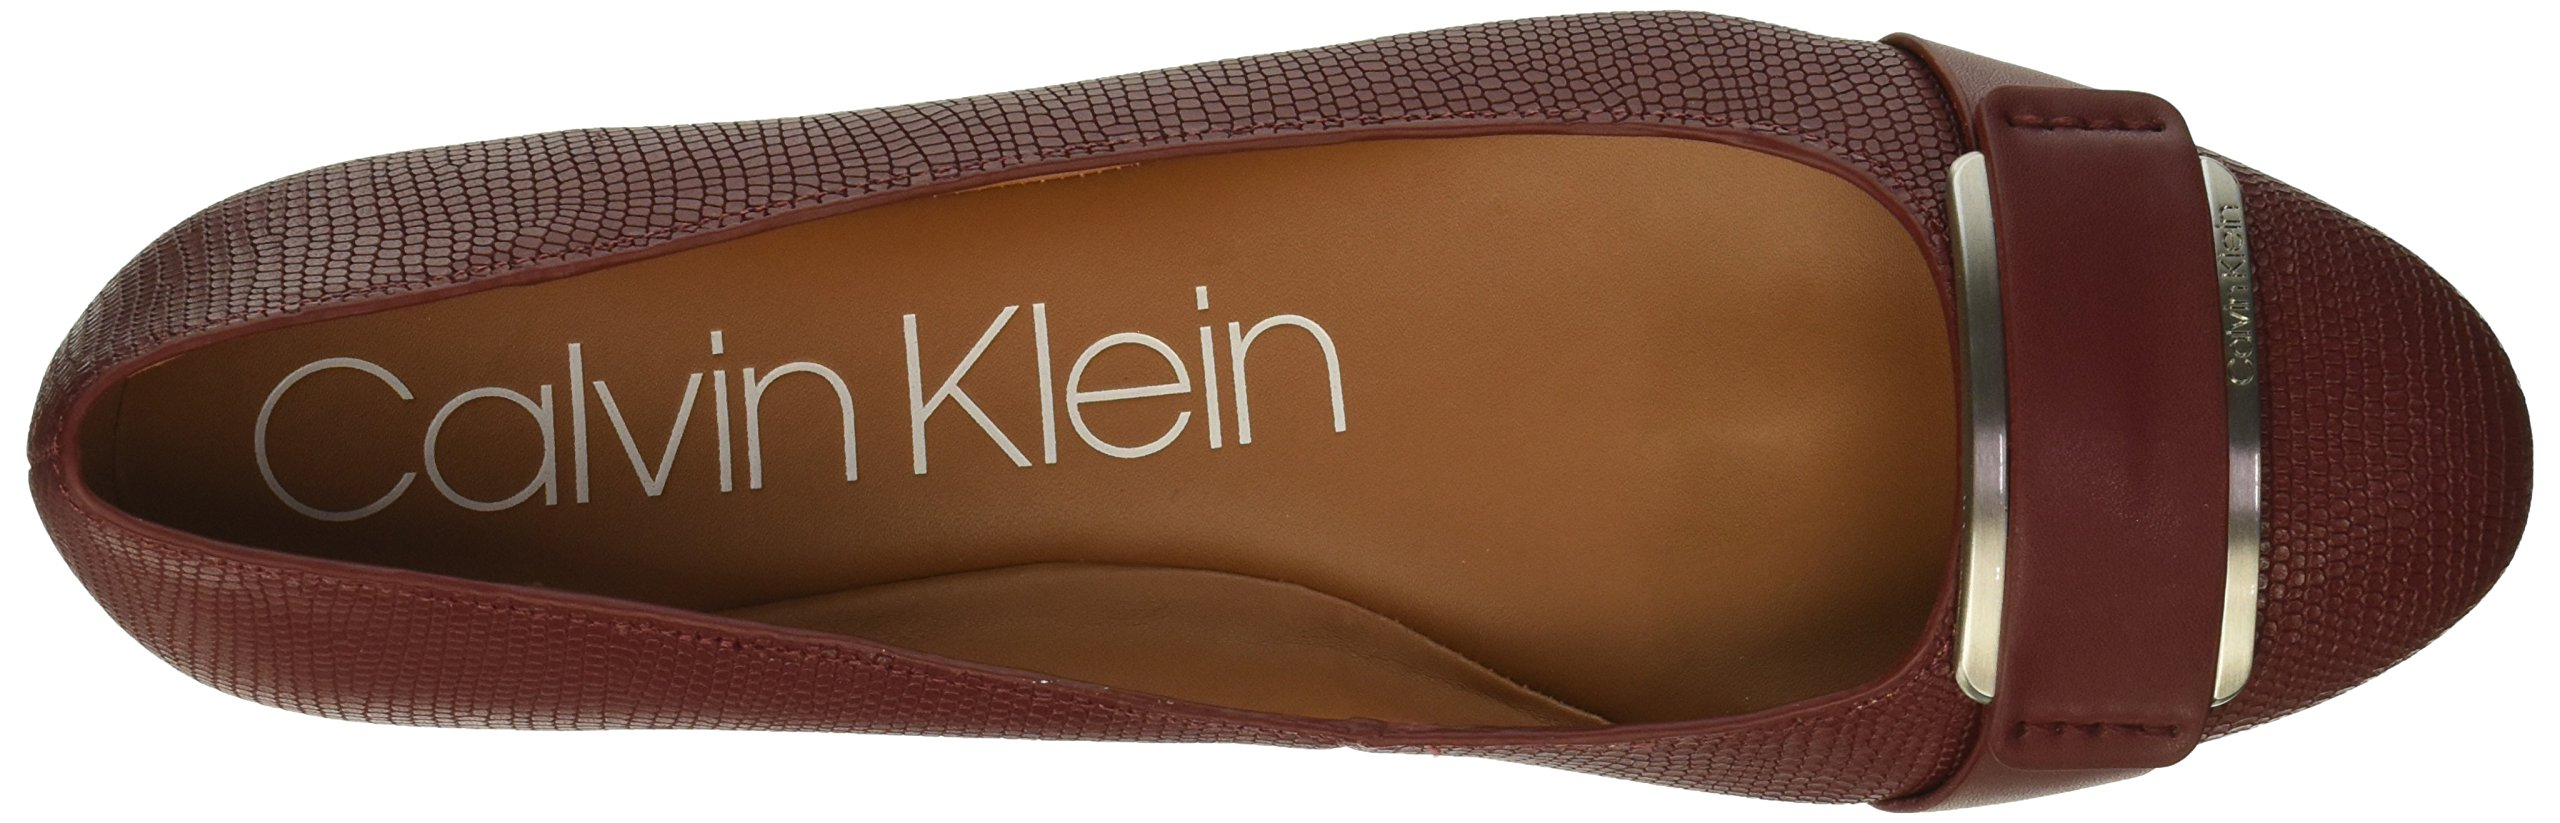 Calvin-Klein-Women-039-s-Oneta-Ballet-Flat-Black-5-M-Choose-SZ-color thumbnail 18